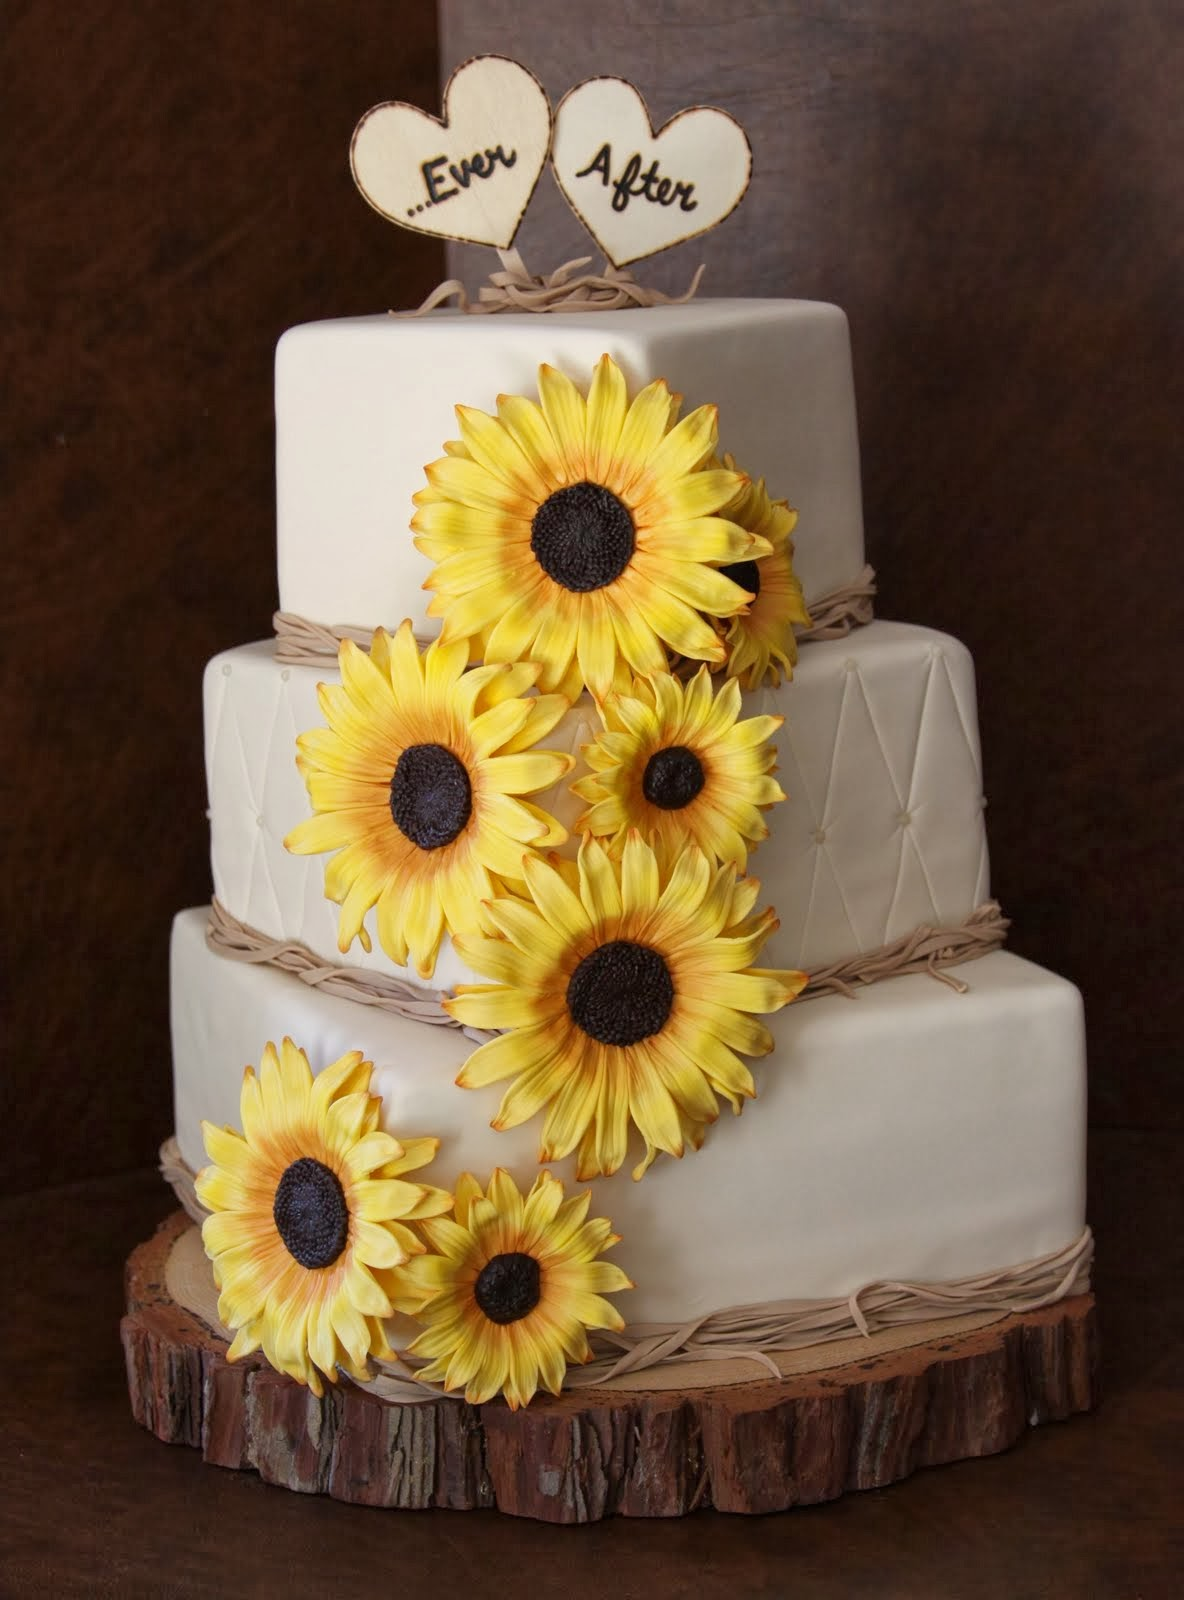 Chocolate Cake With Sunflowers